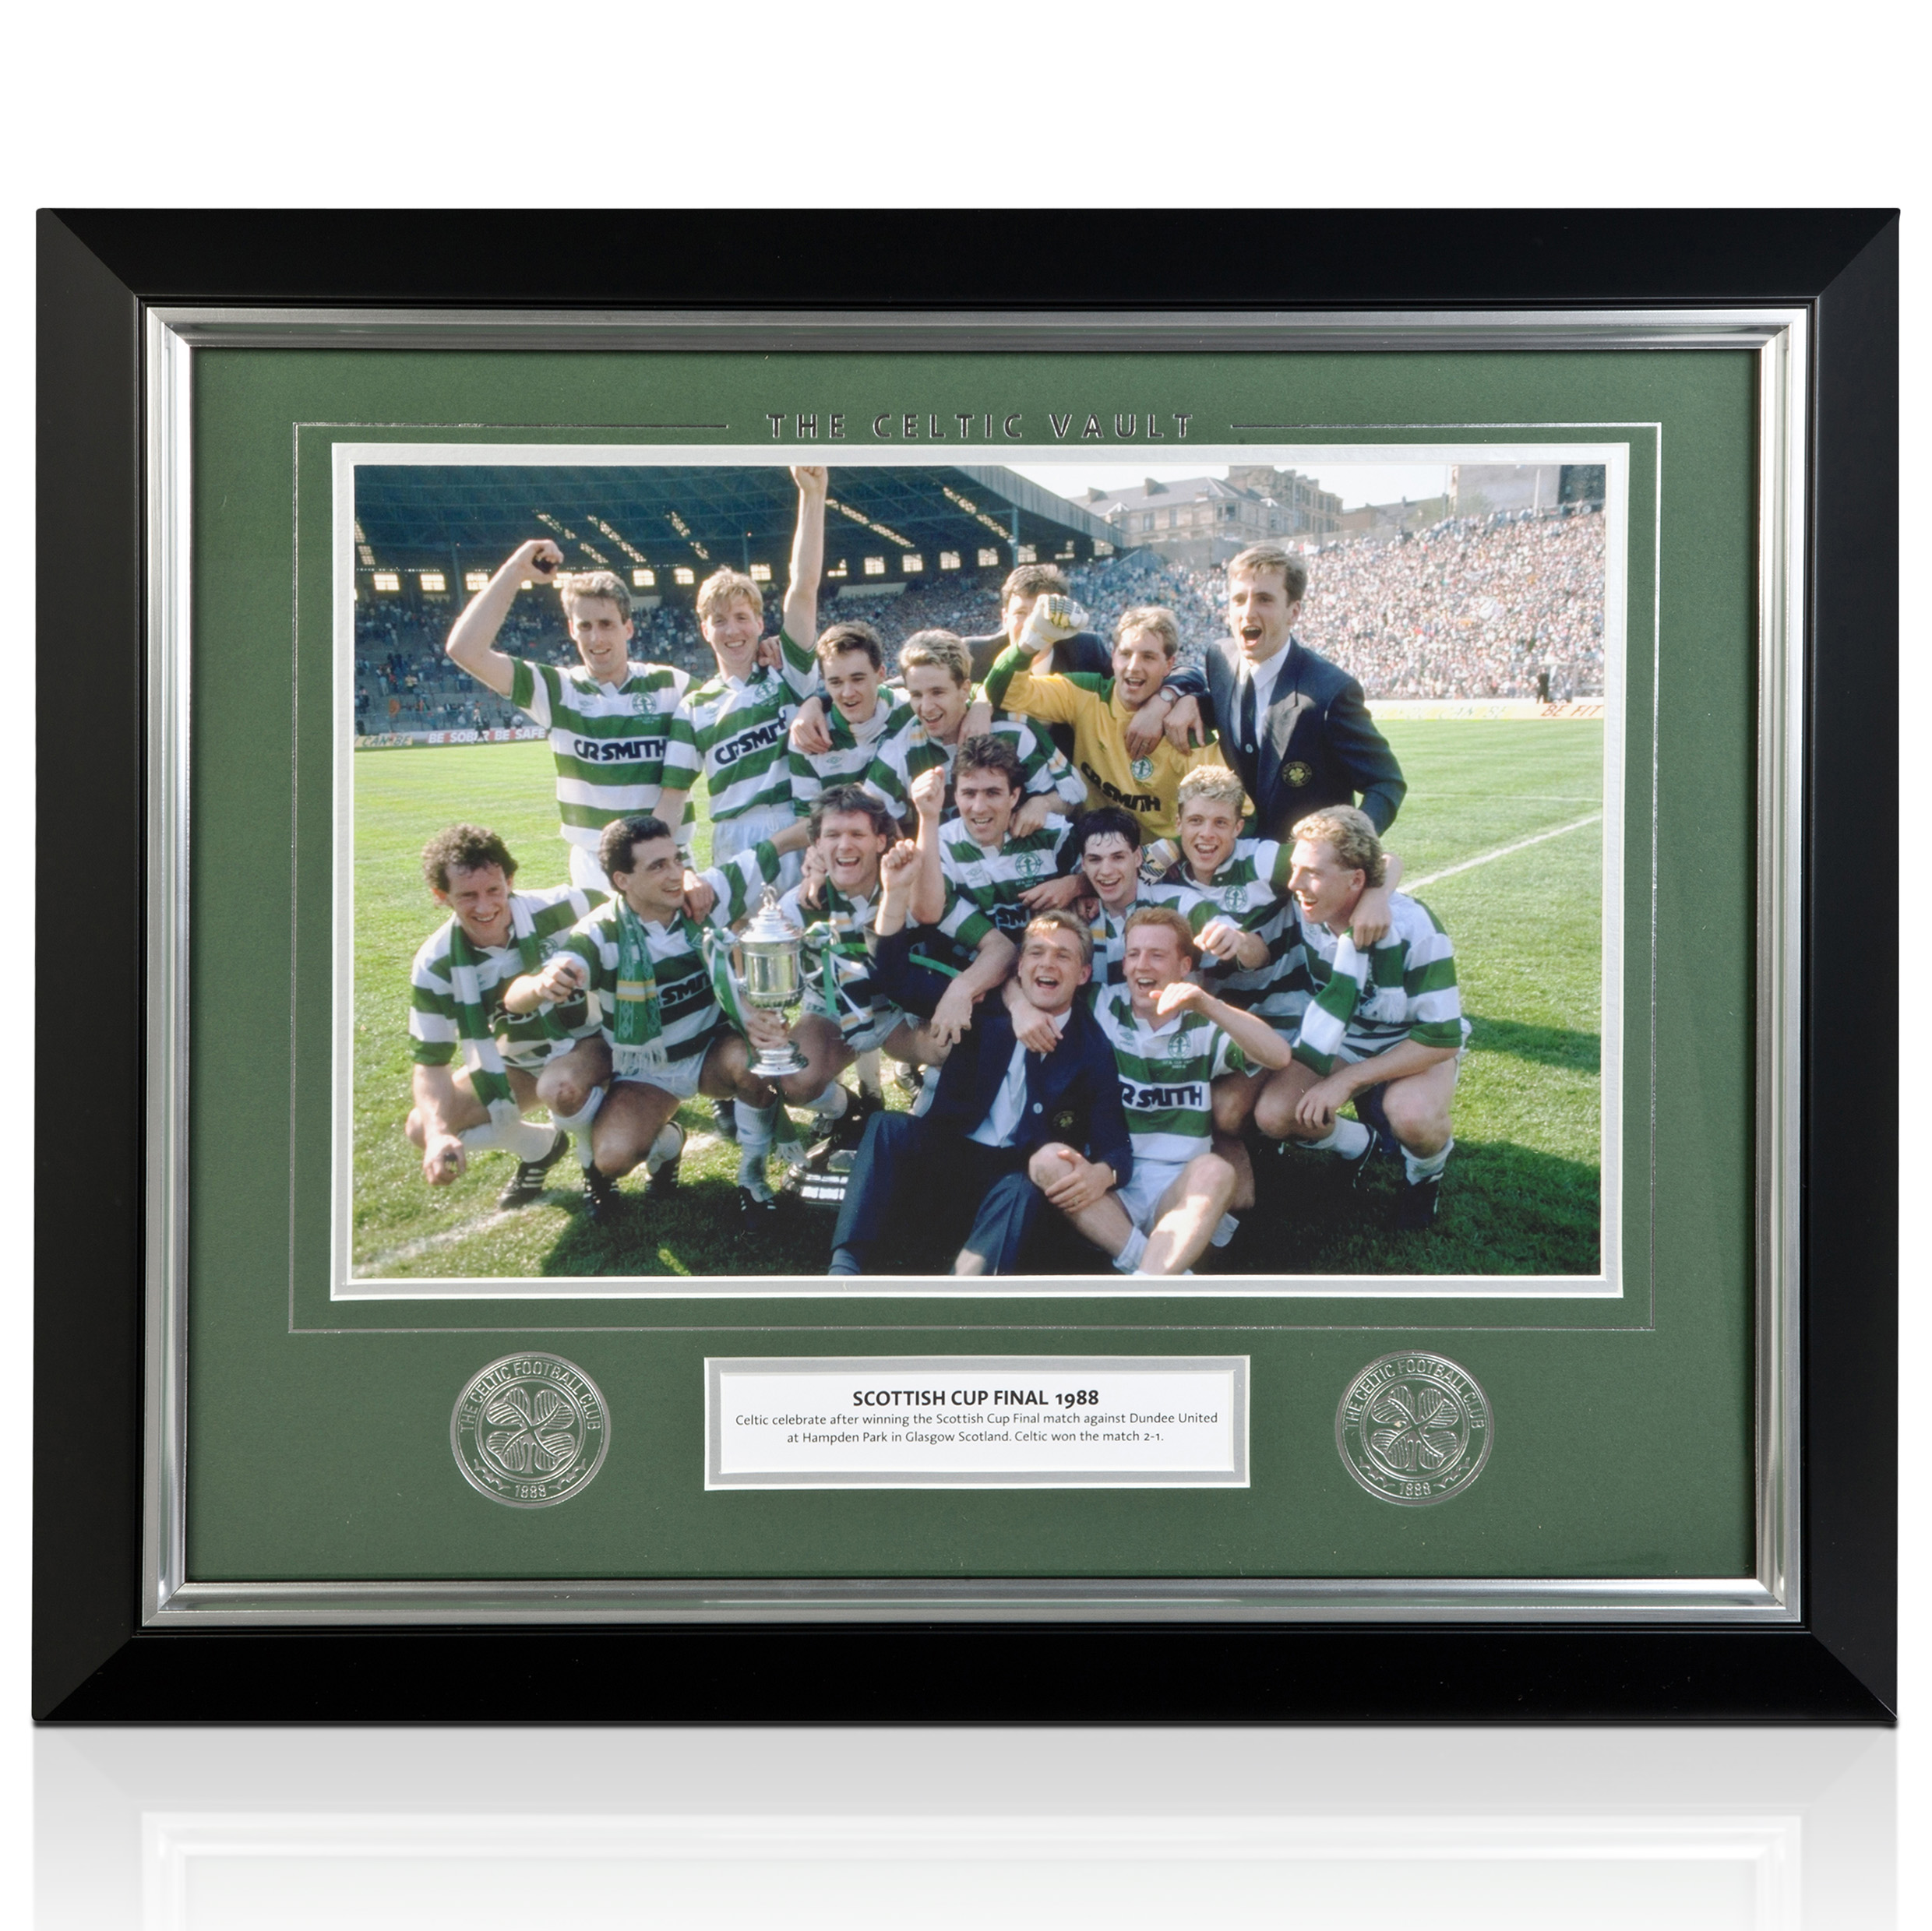 Celtic Vault - Scottish Cup 1988 Final - Framed